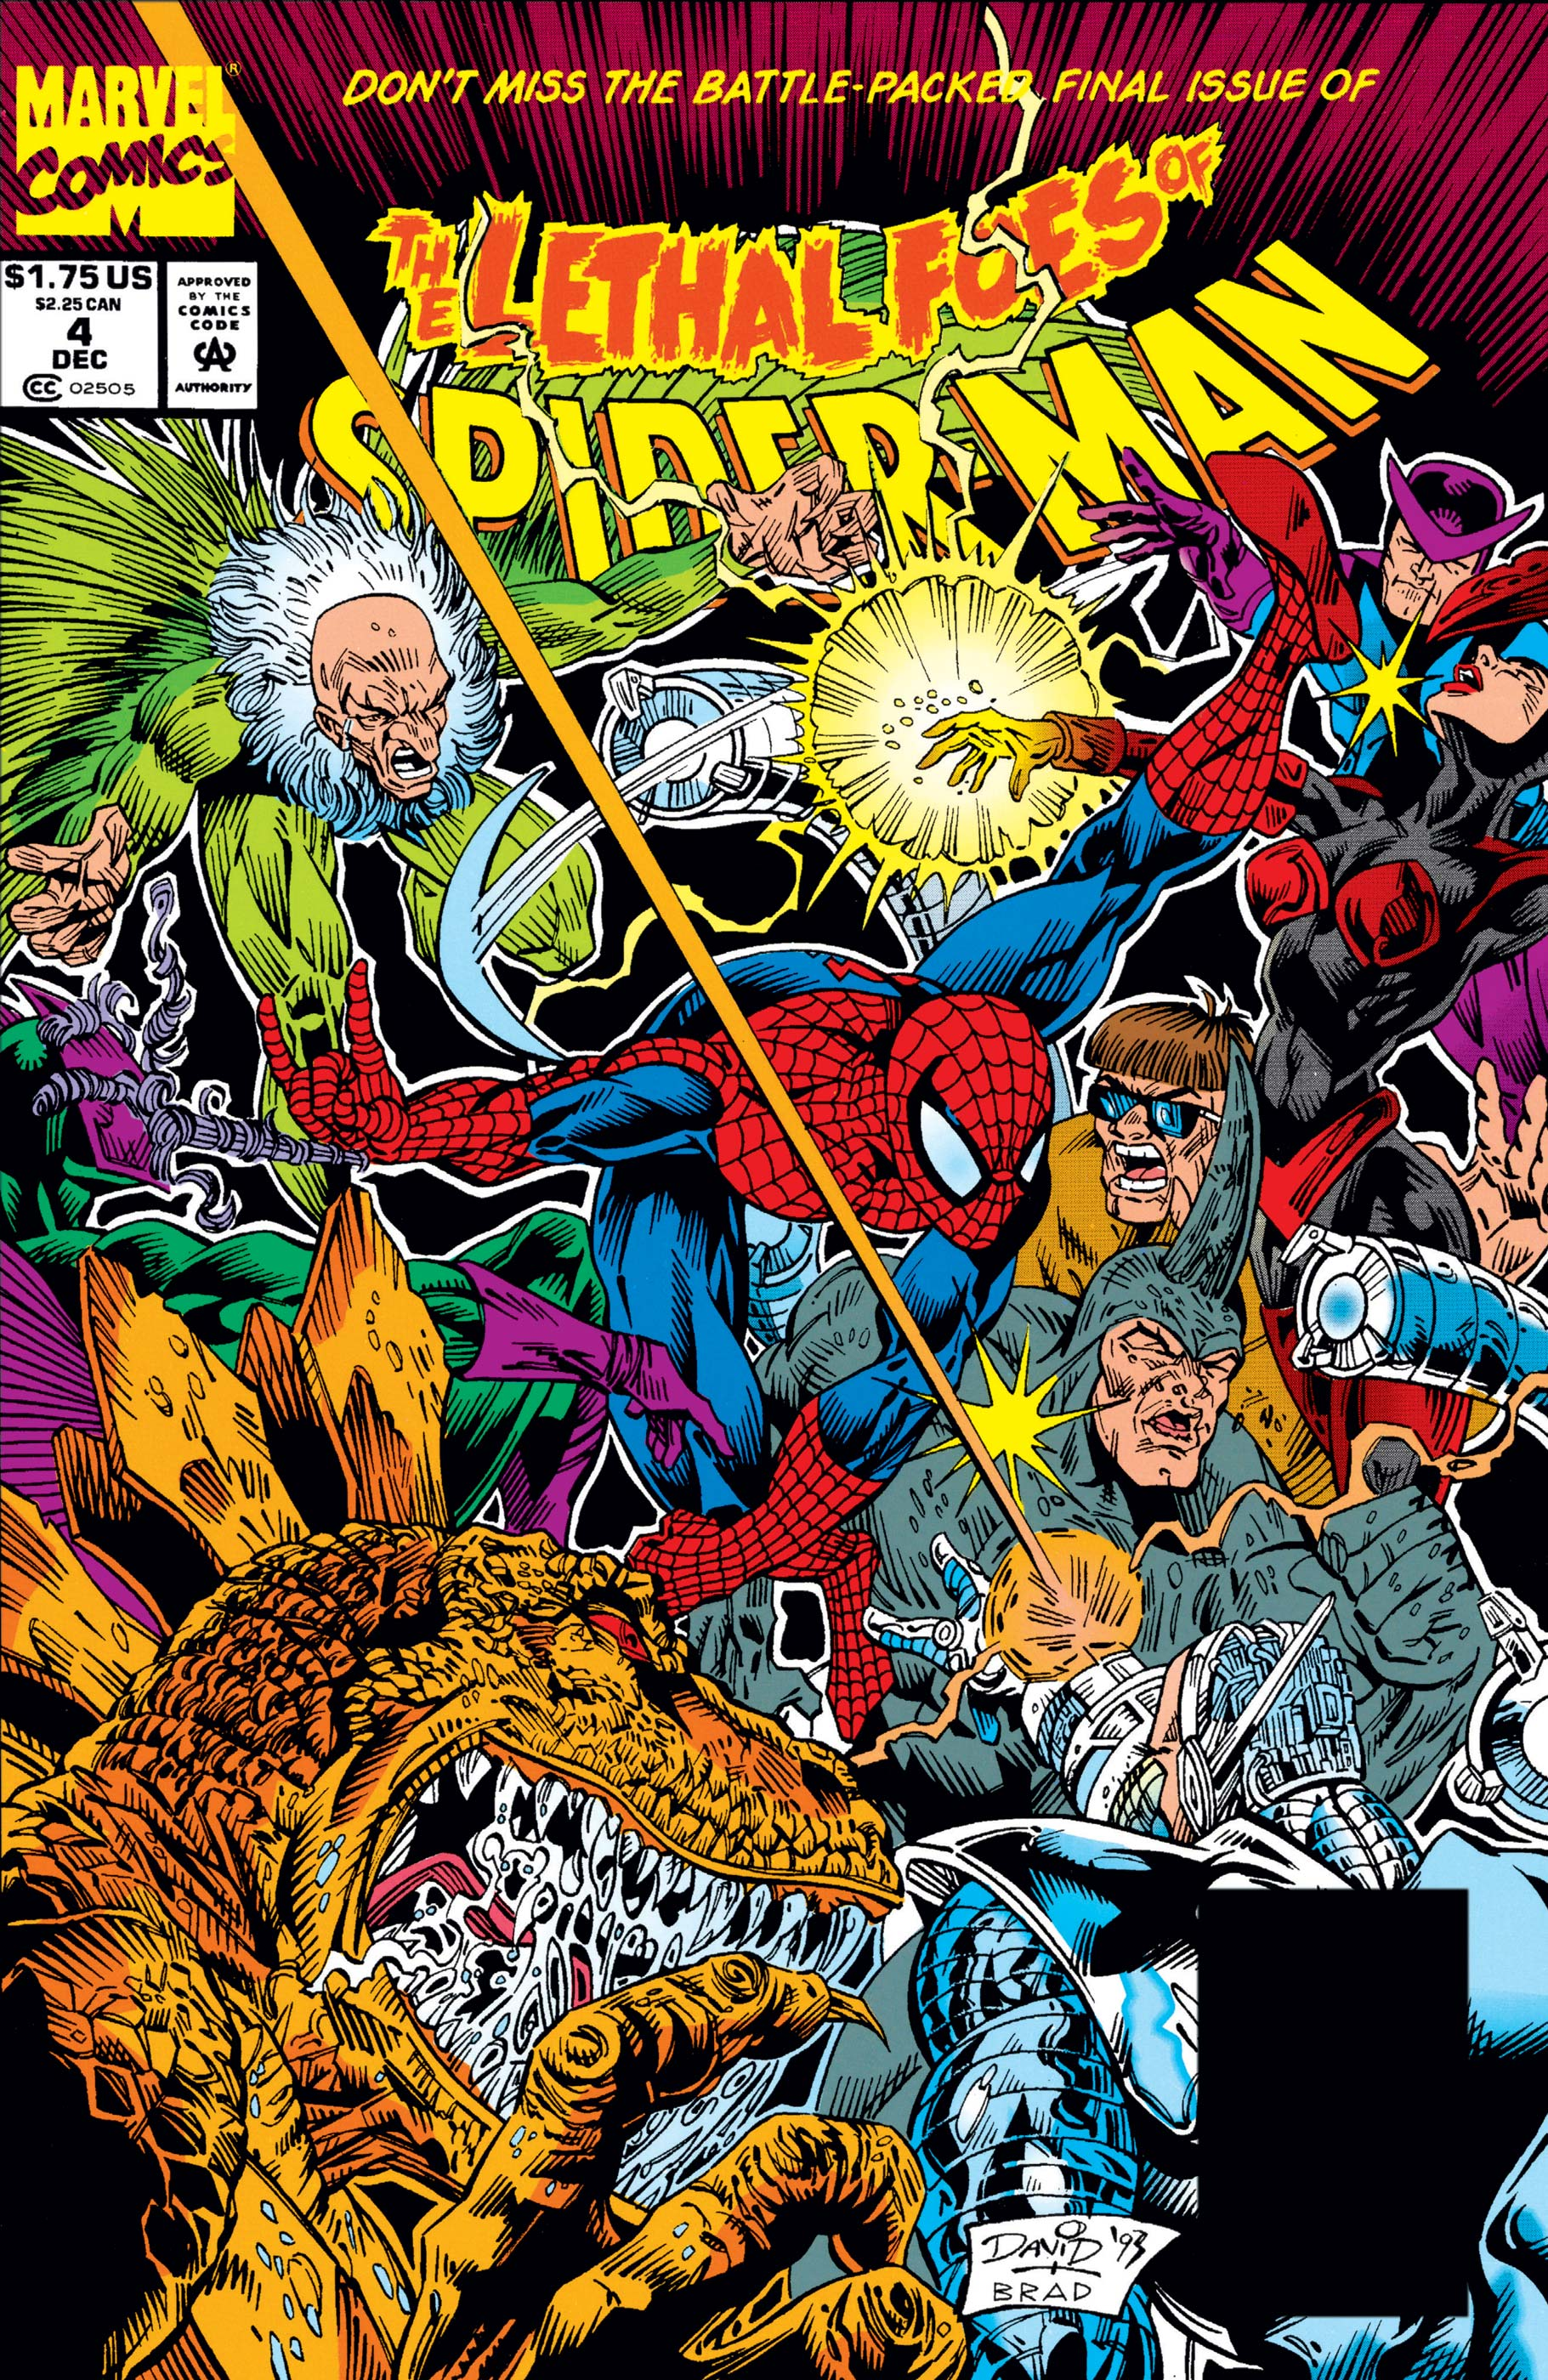 Lethal Foes of Spider-Man (1993) #4